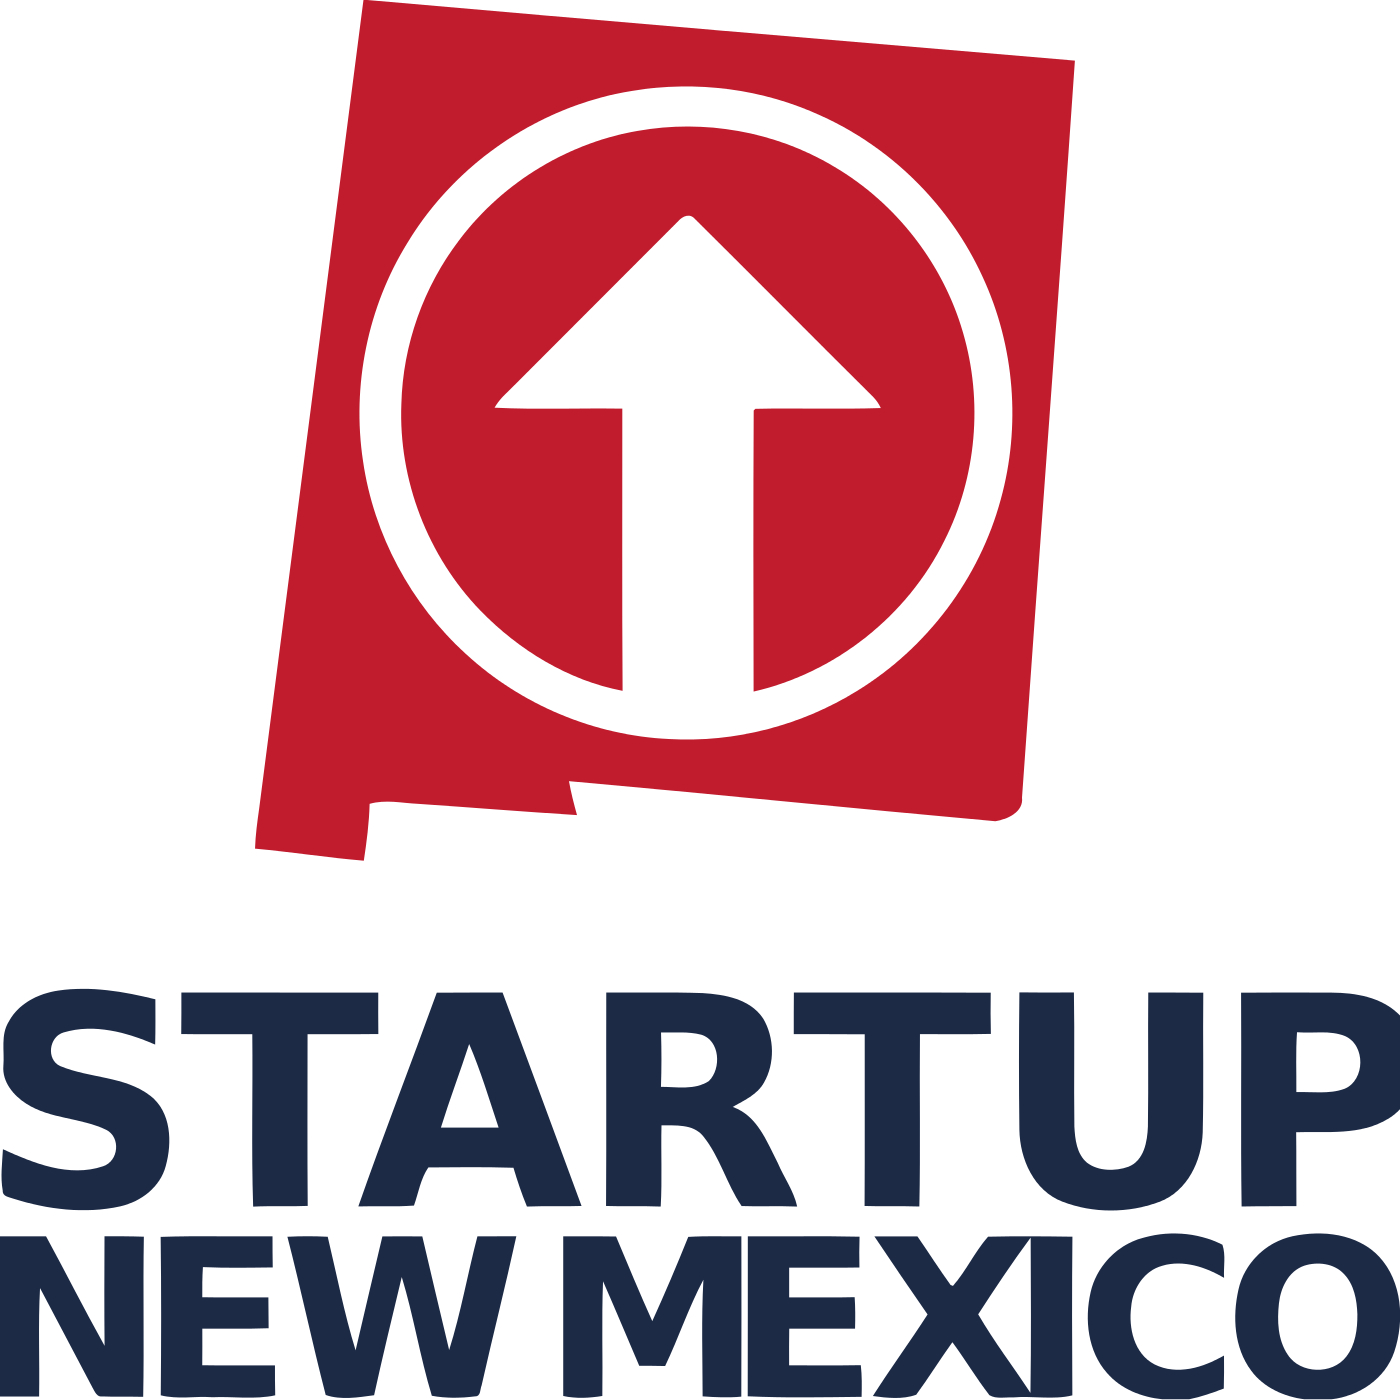 The Startup New Mexico Podcast | Connecting and Highlighting the New Mexico Entrepreneurial Community